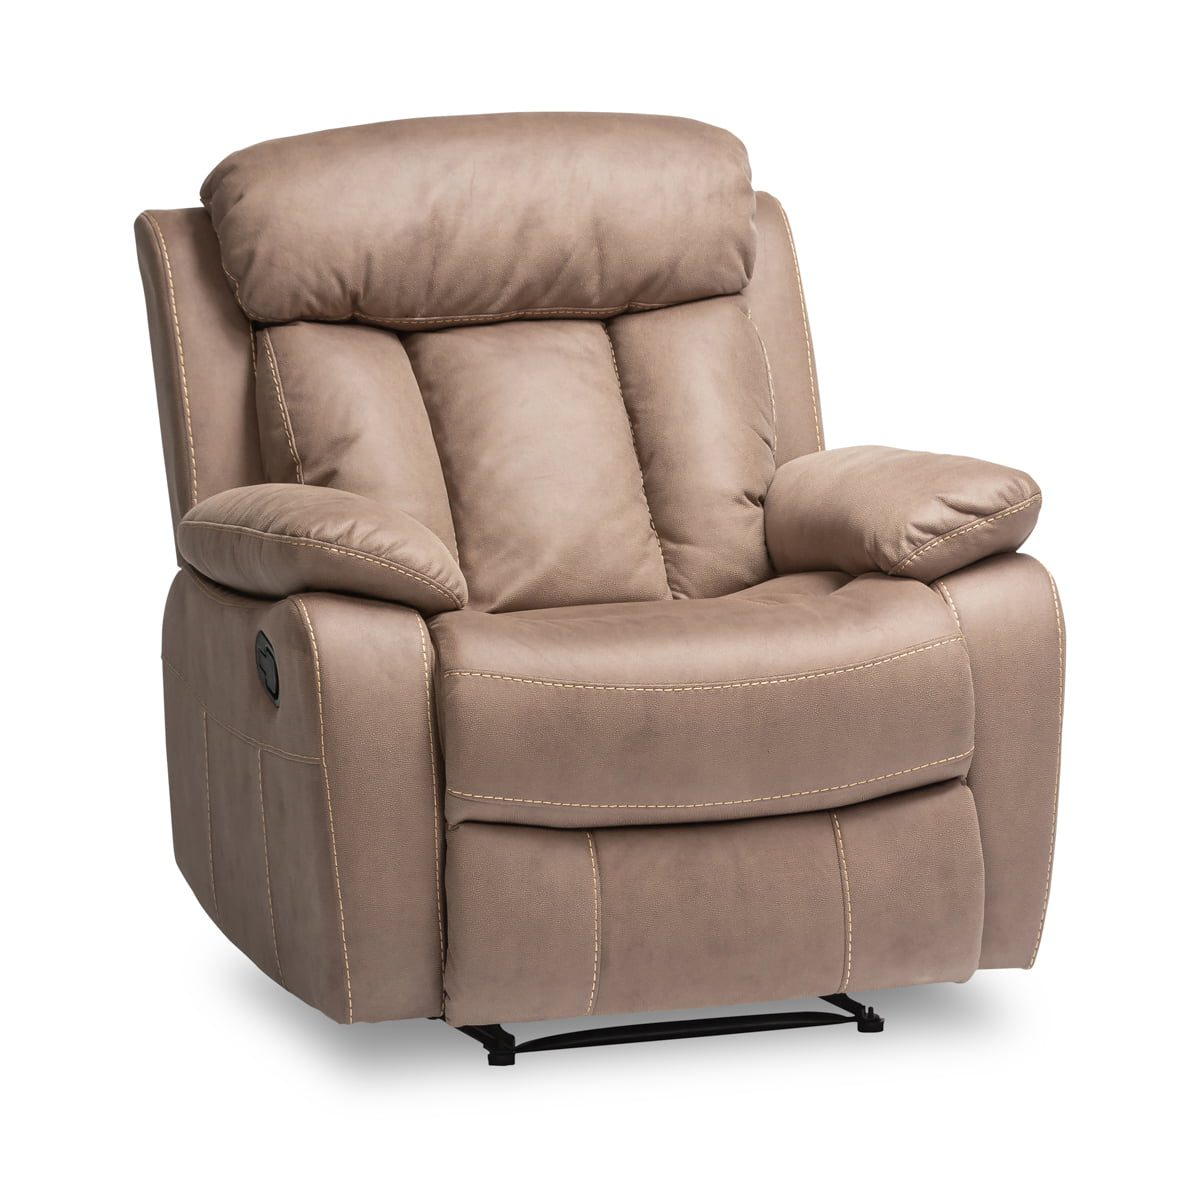 Junior Taupe Recliner Armchair